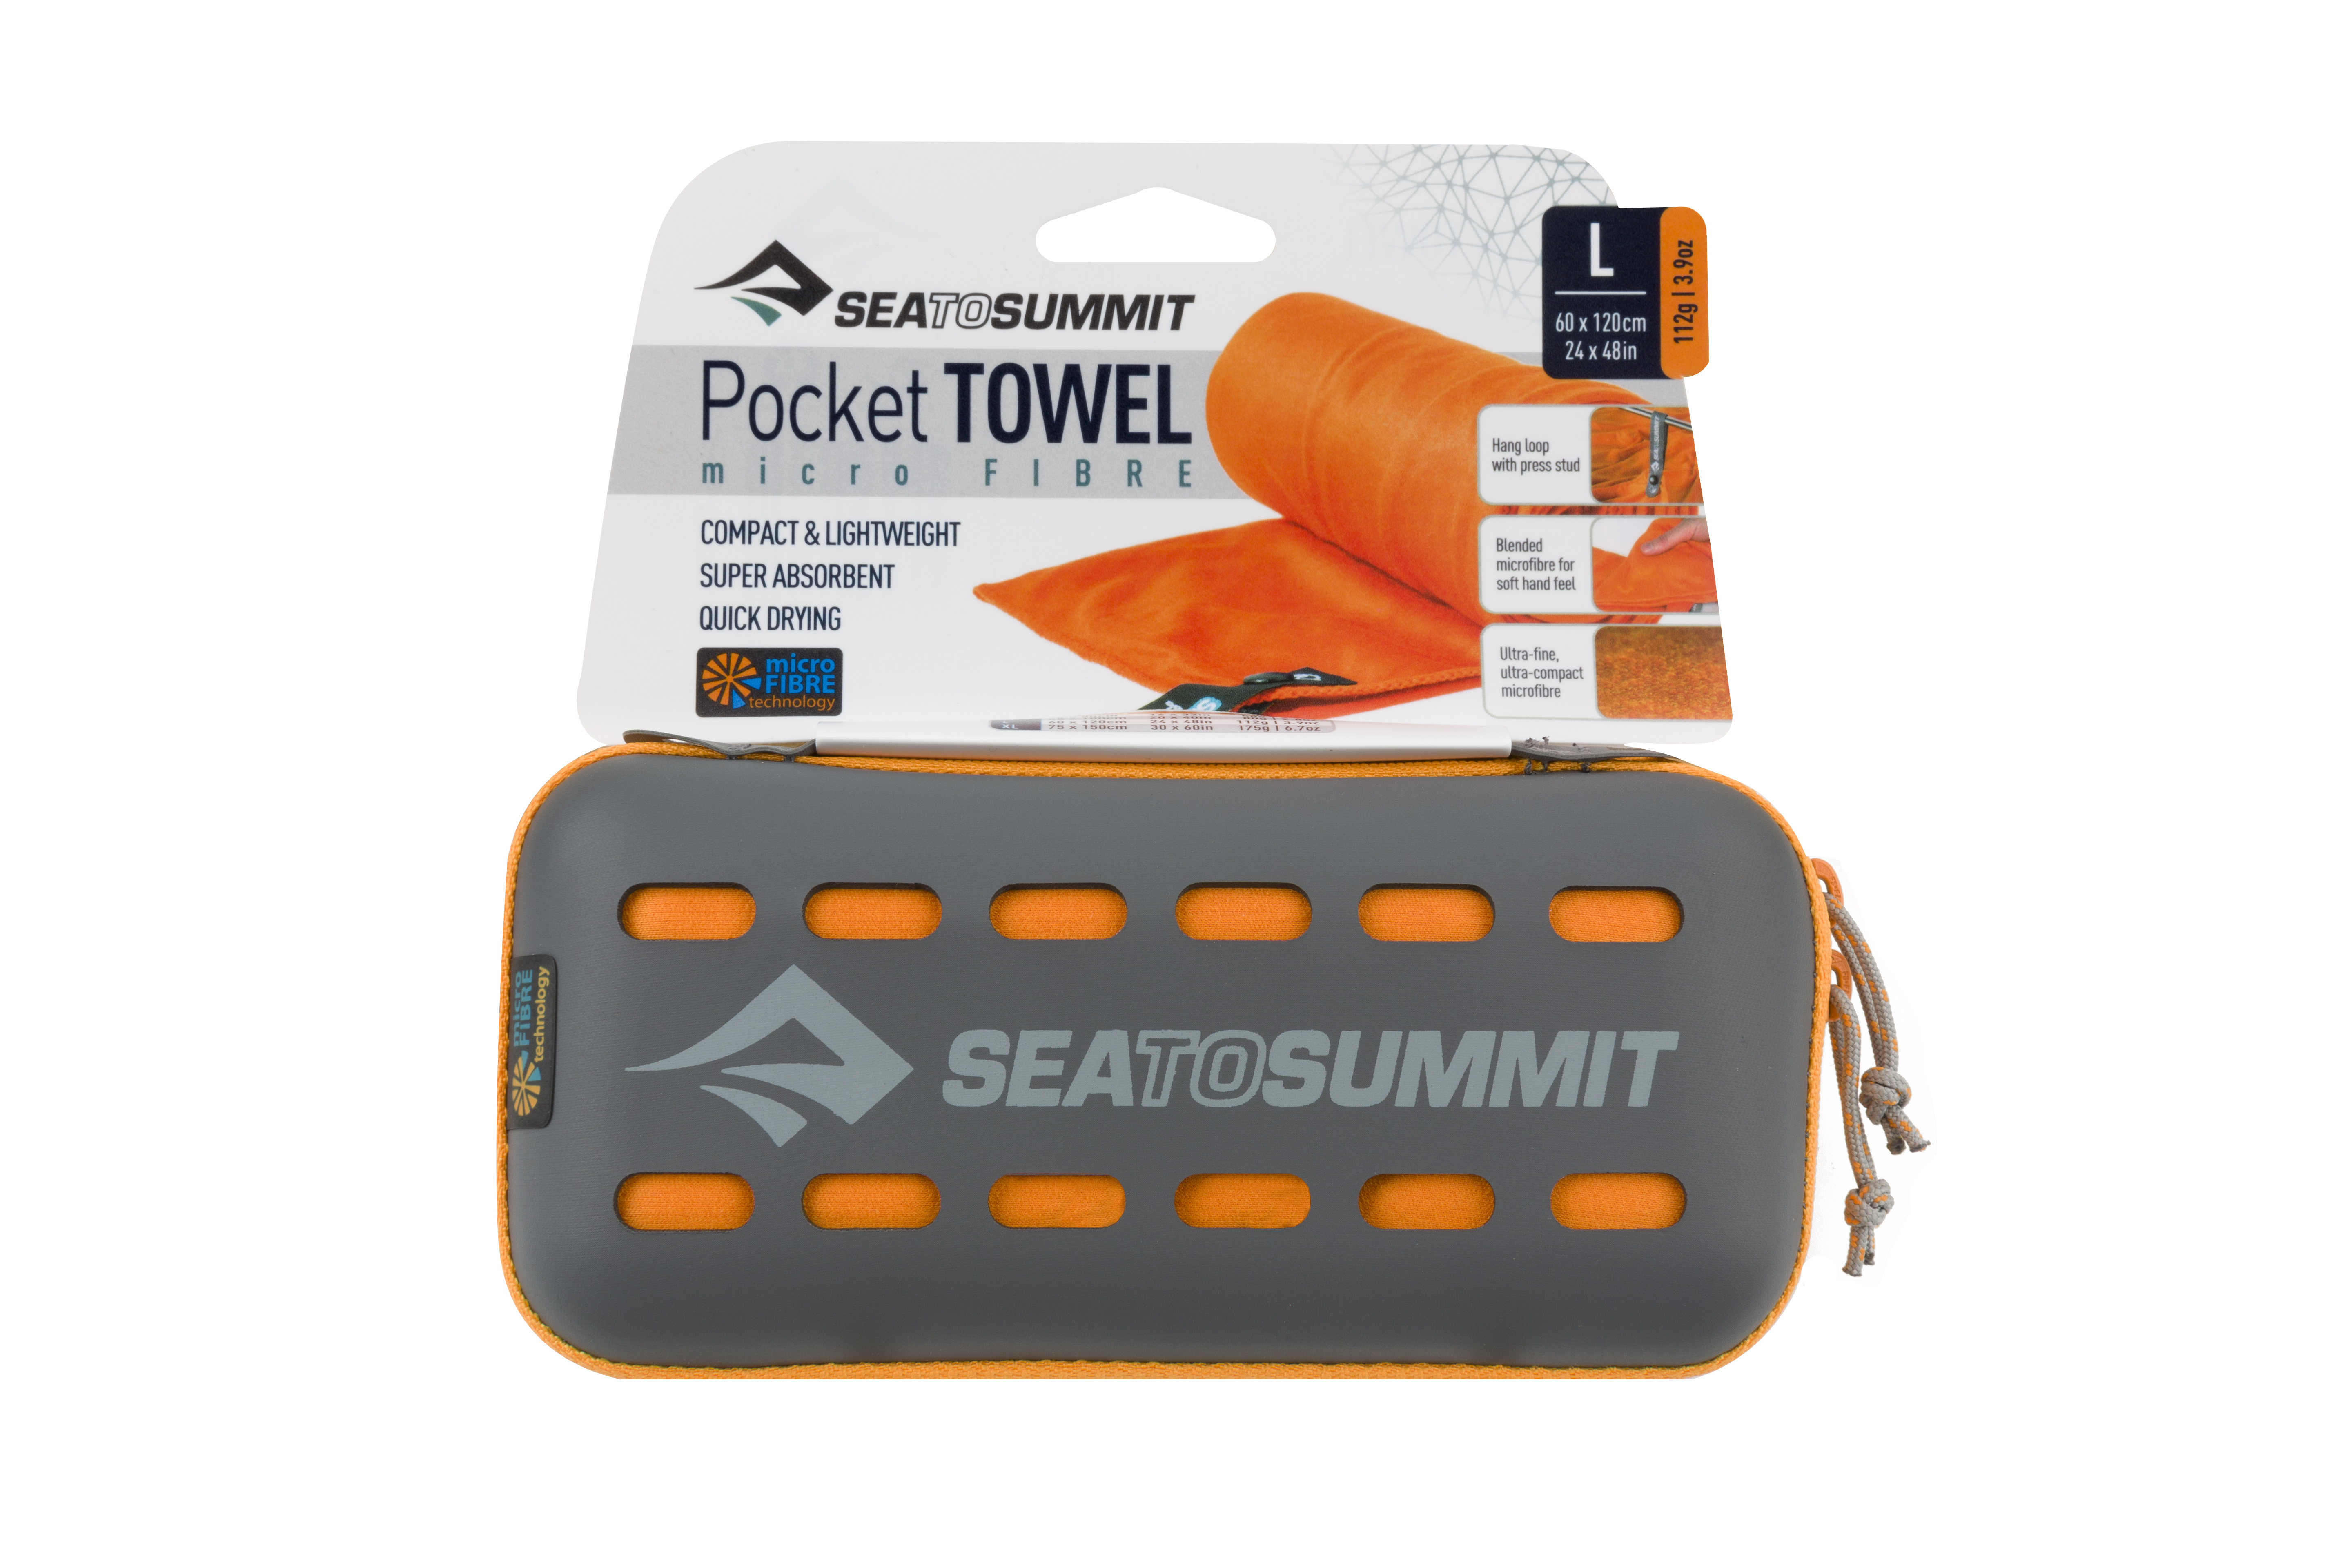 Полотенце Pocket Towel Sea To Summit — фото 4